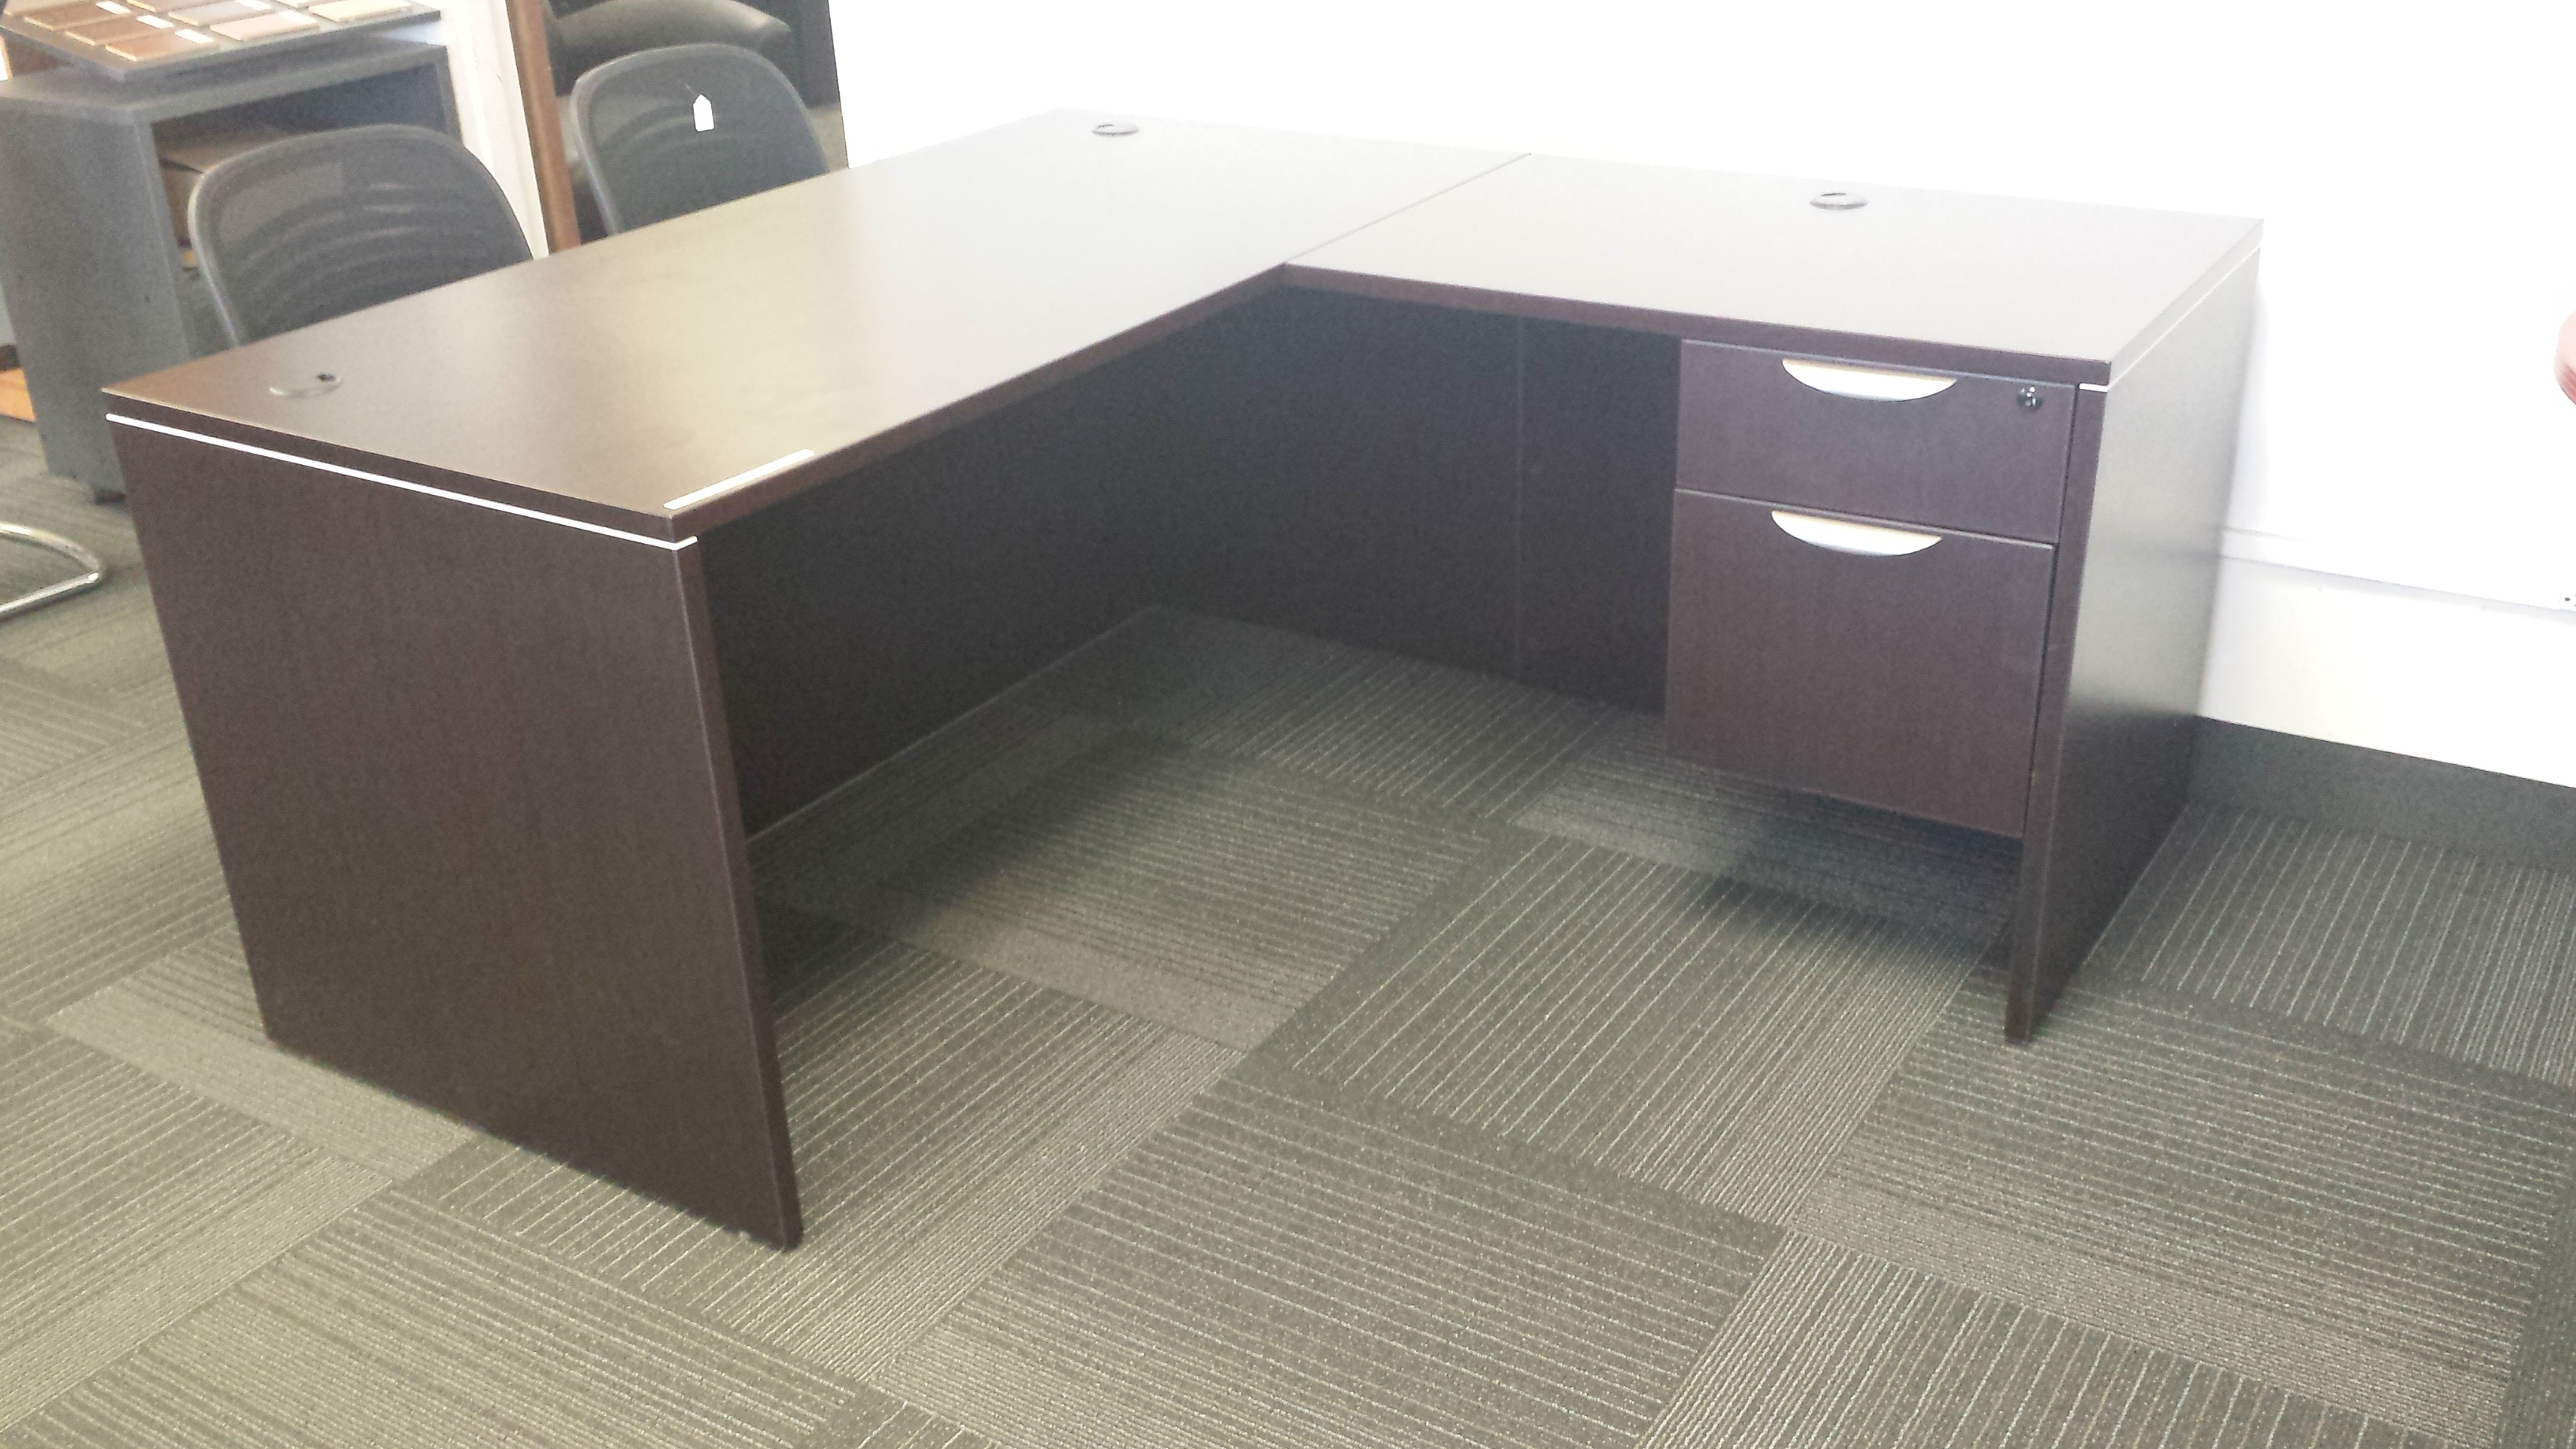 used desks high and shaped affordable desk u showitemdetail commercial quality furniture office savvi